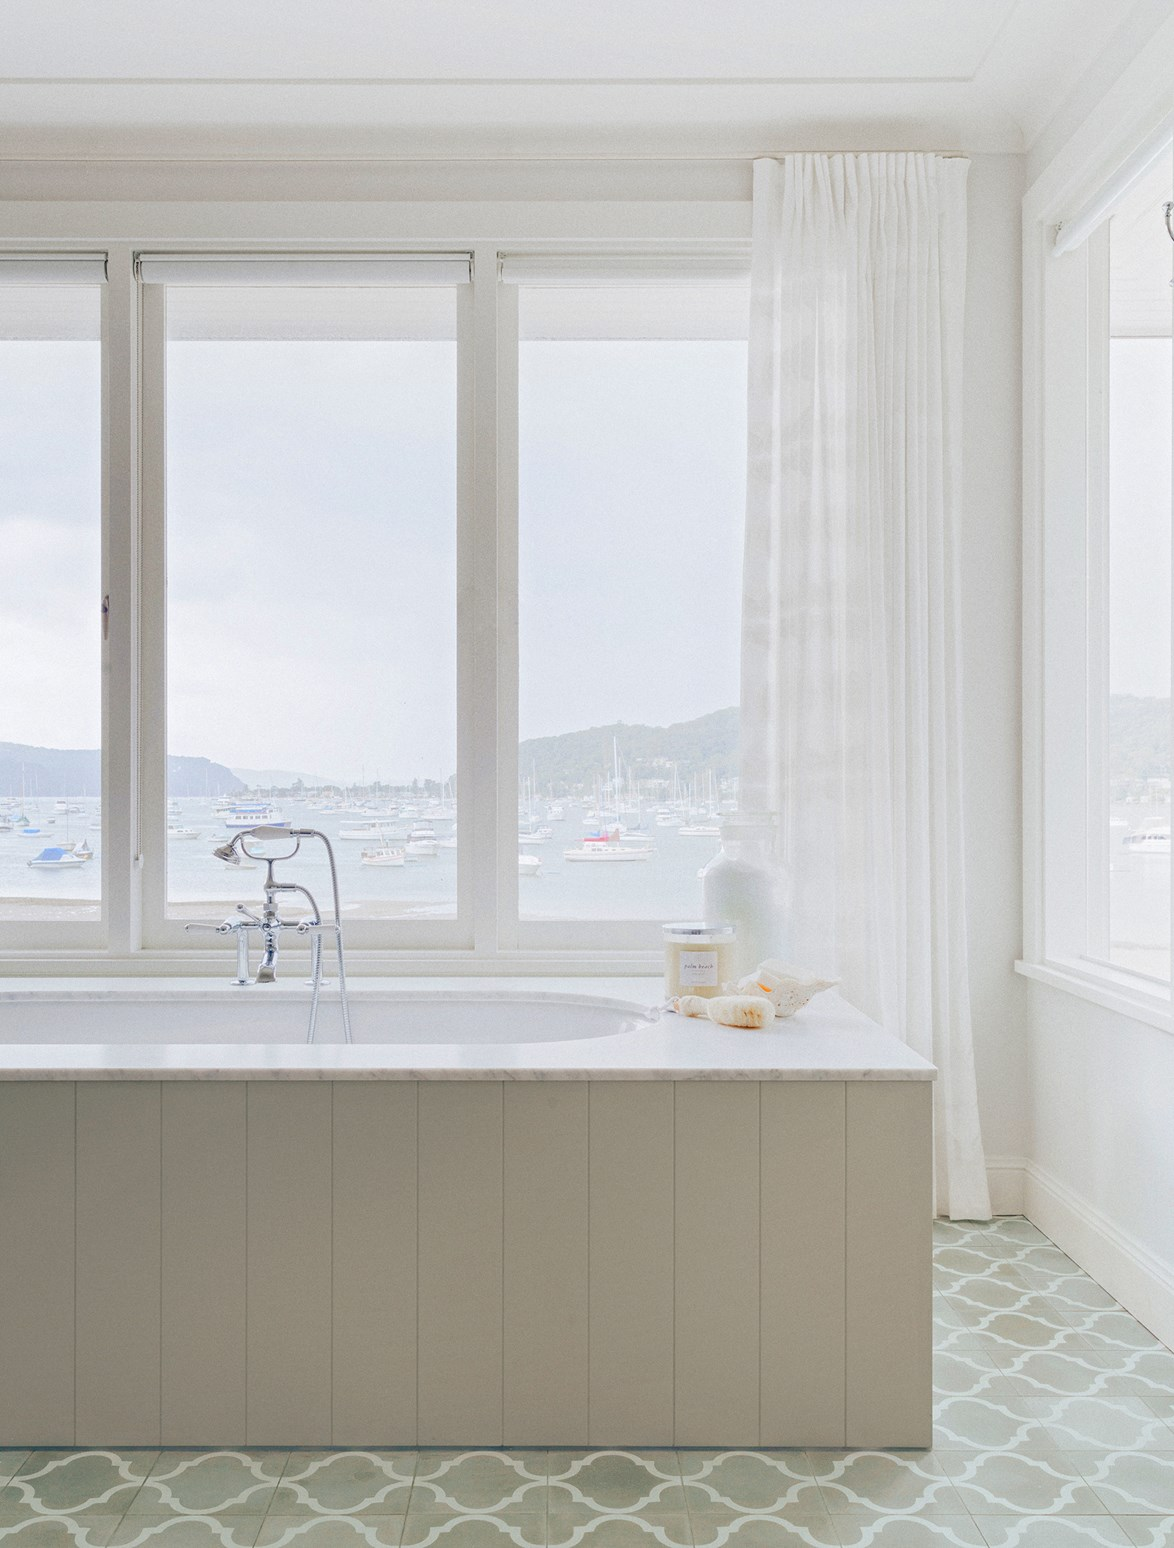 """Even if space isn't a concern – as is the case with this bathroom in a [hamptons style beach house](https://www.homestolove.com.au/hamptons-style-beach-house-renovation-2380